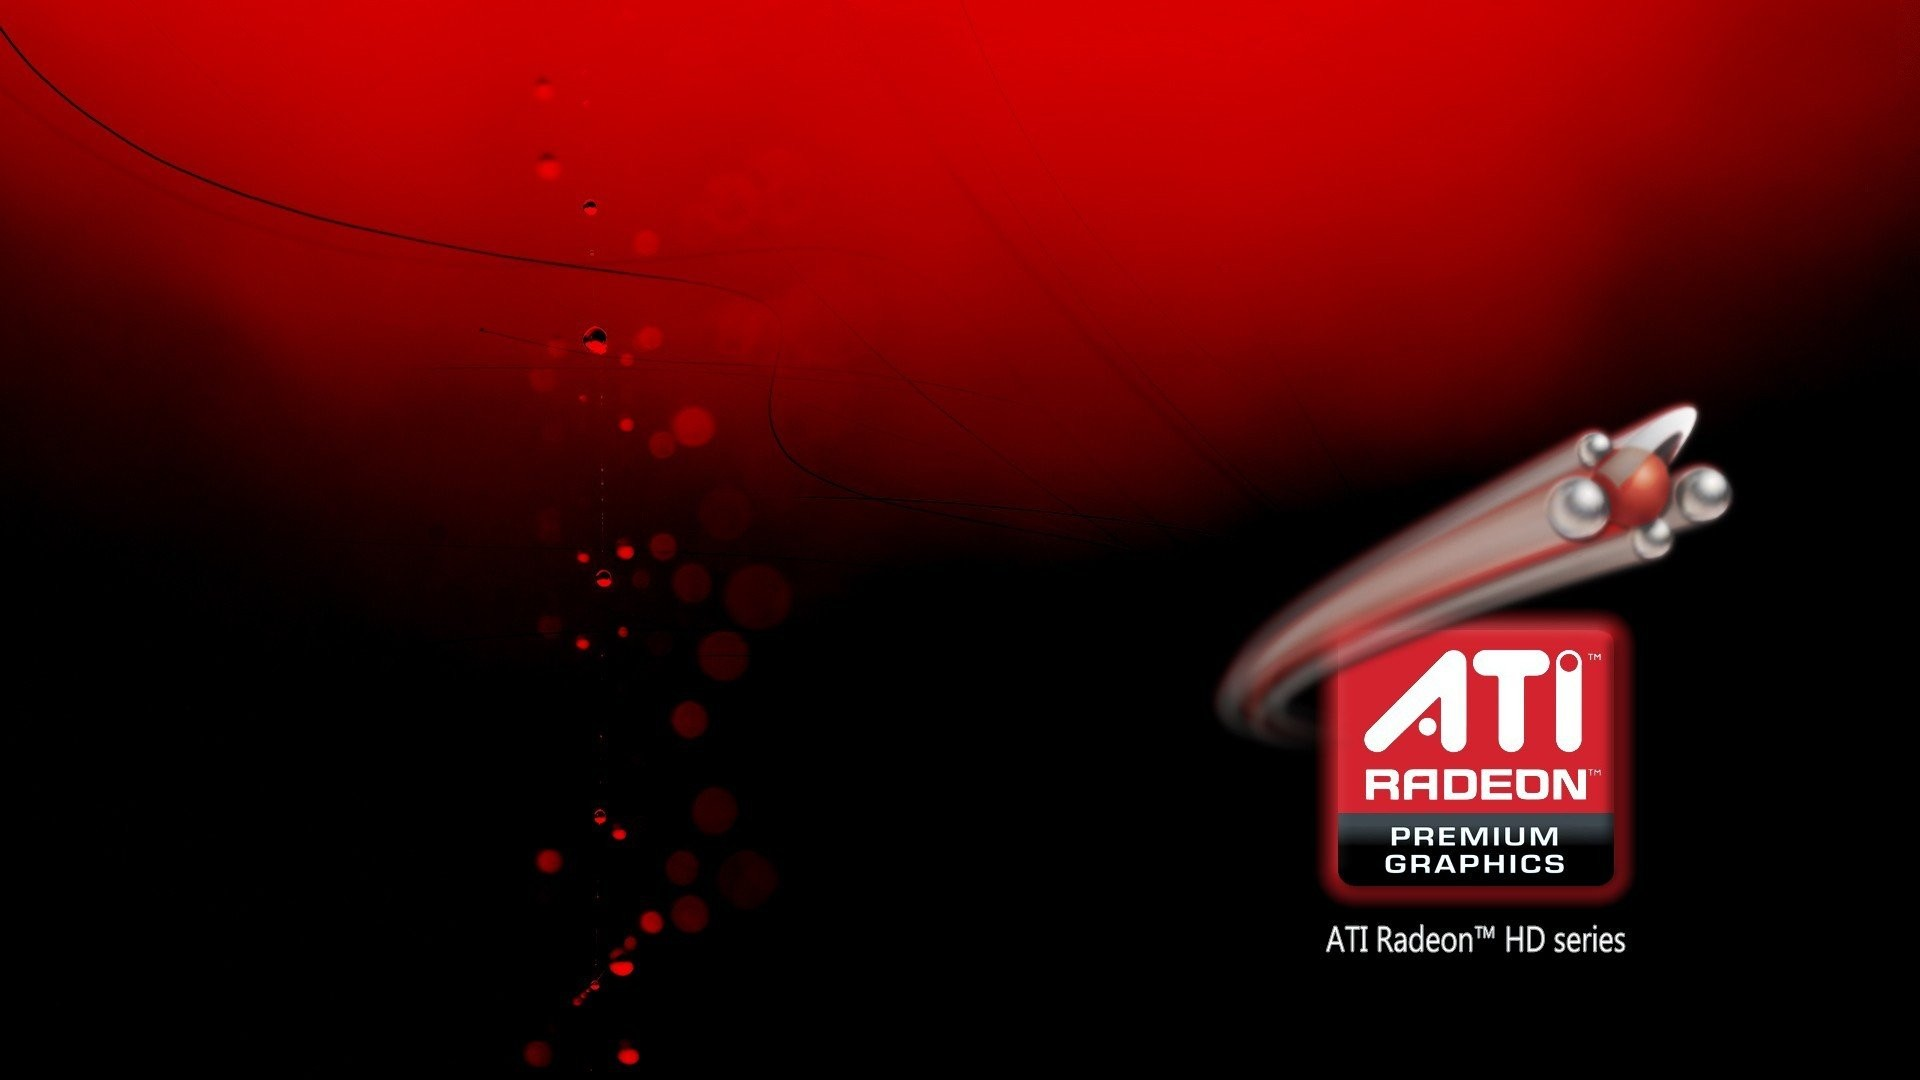 Amd Radeon Hd Wallpaper Pictures to Pin on Pinterest – PinsDaddy